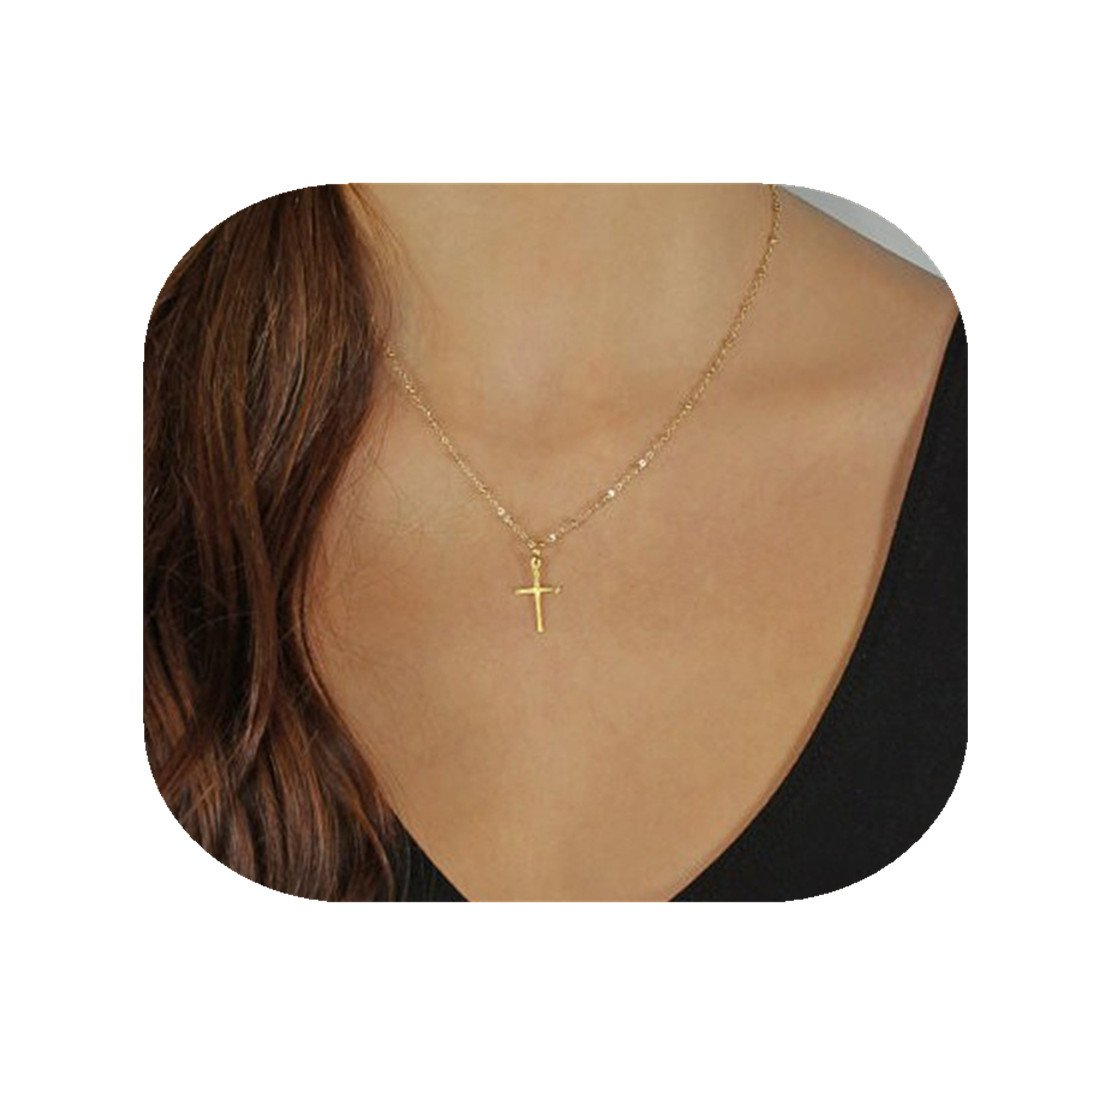 CHENCAN01 Gold Cross Necklace, Cross Jewelry, Micro Cross, Small Gold Cross, Elegant Minimalist, Christmas Gifts